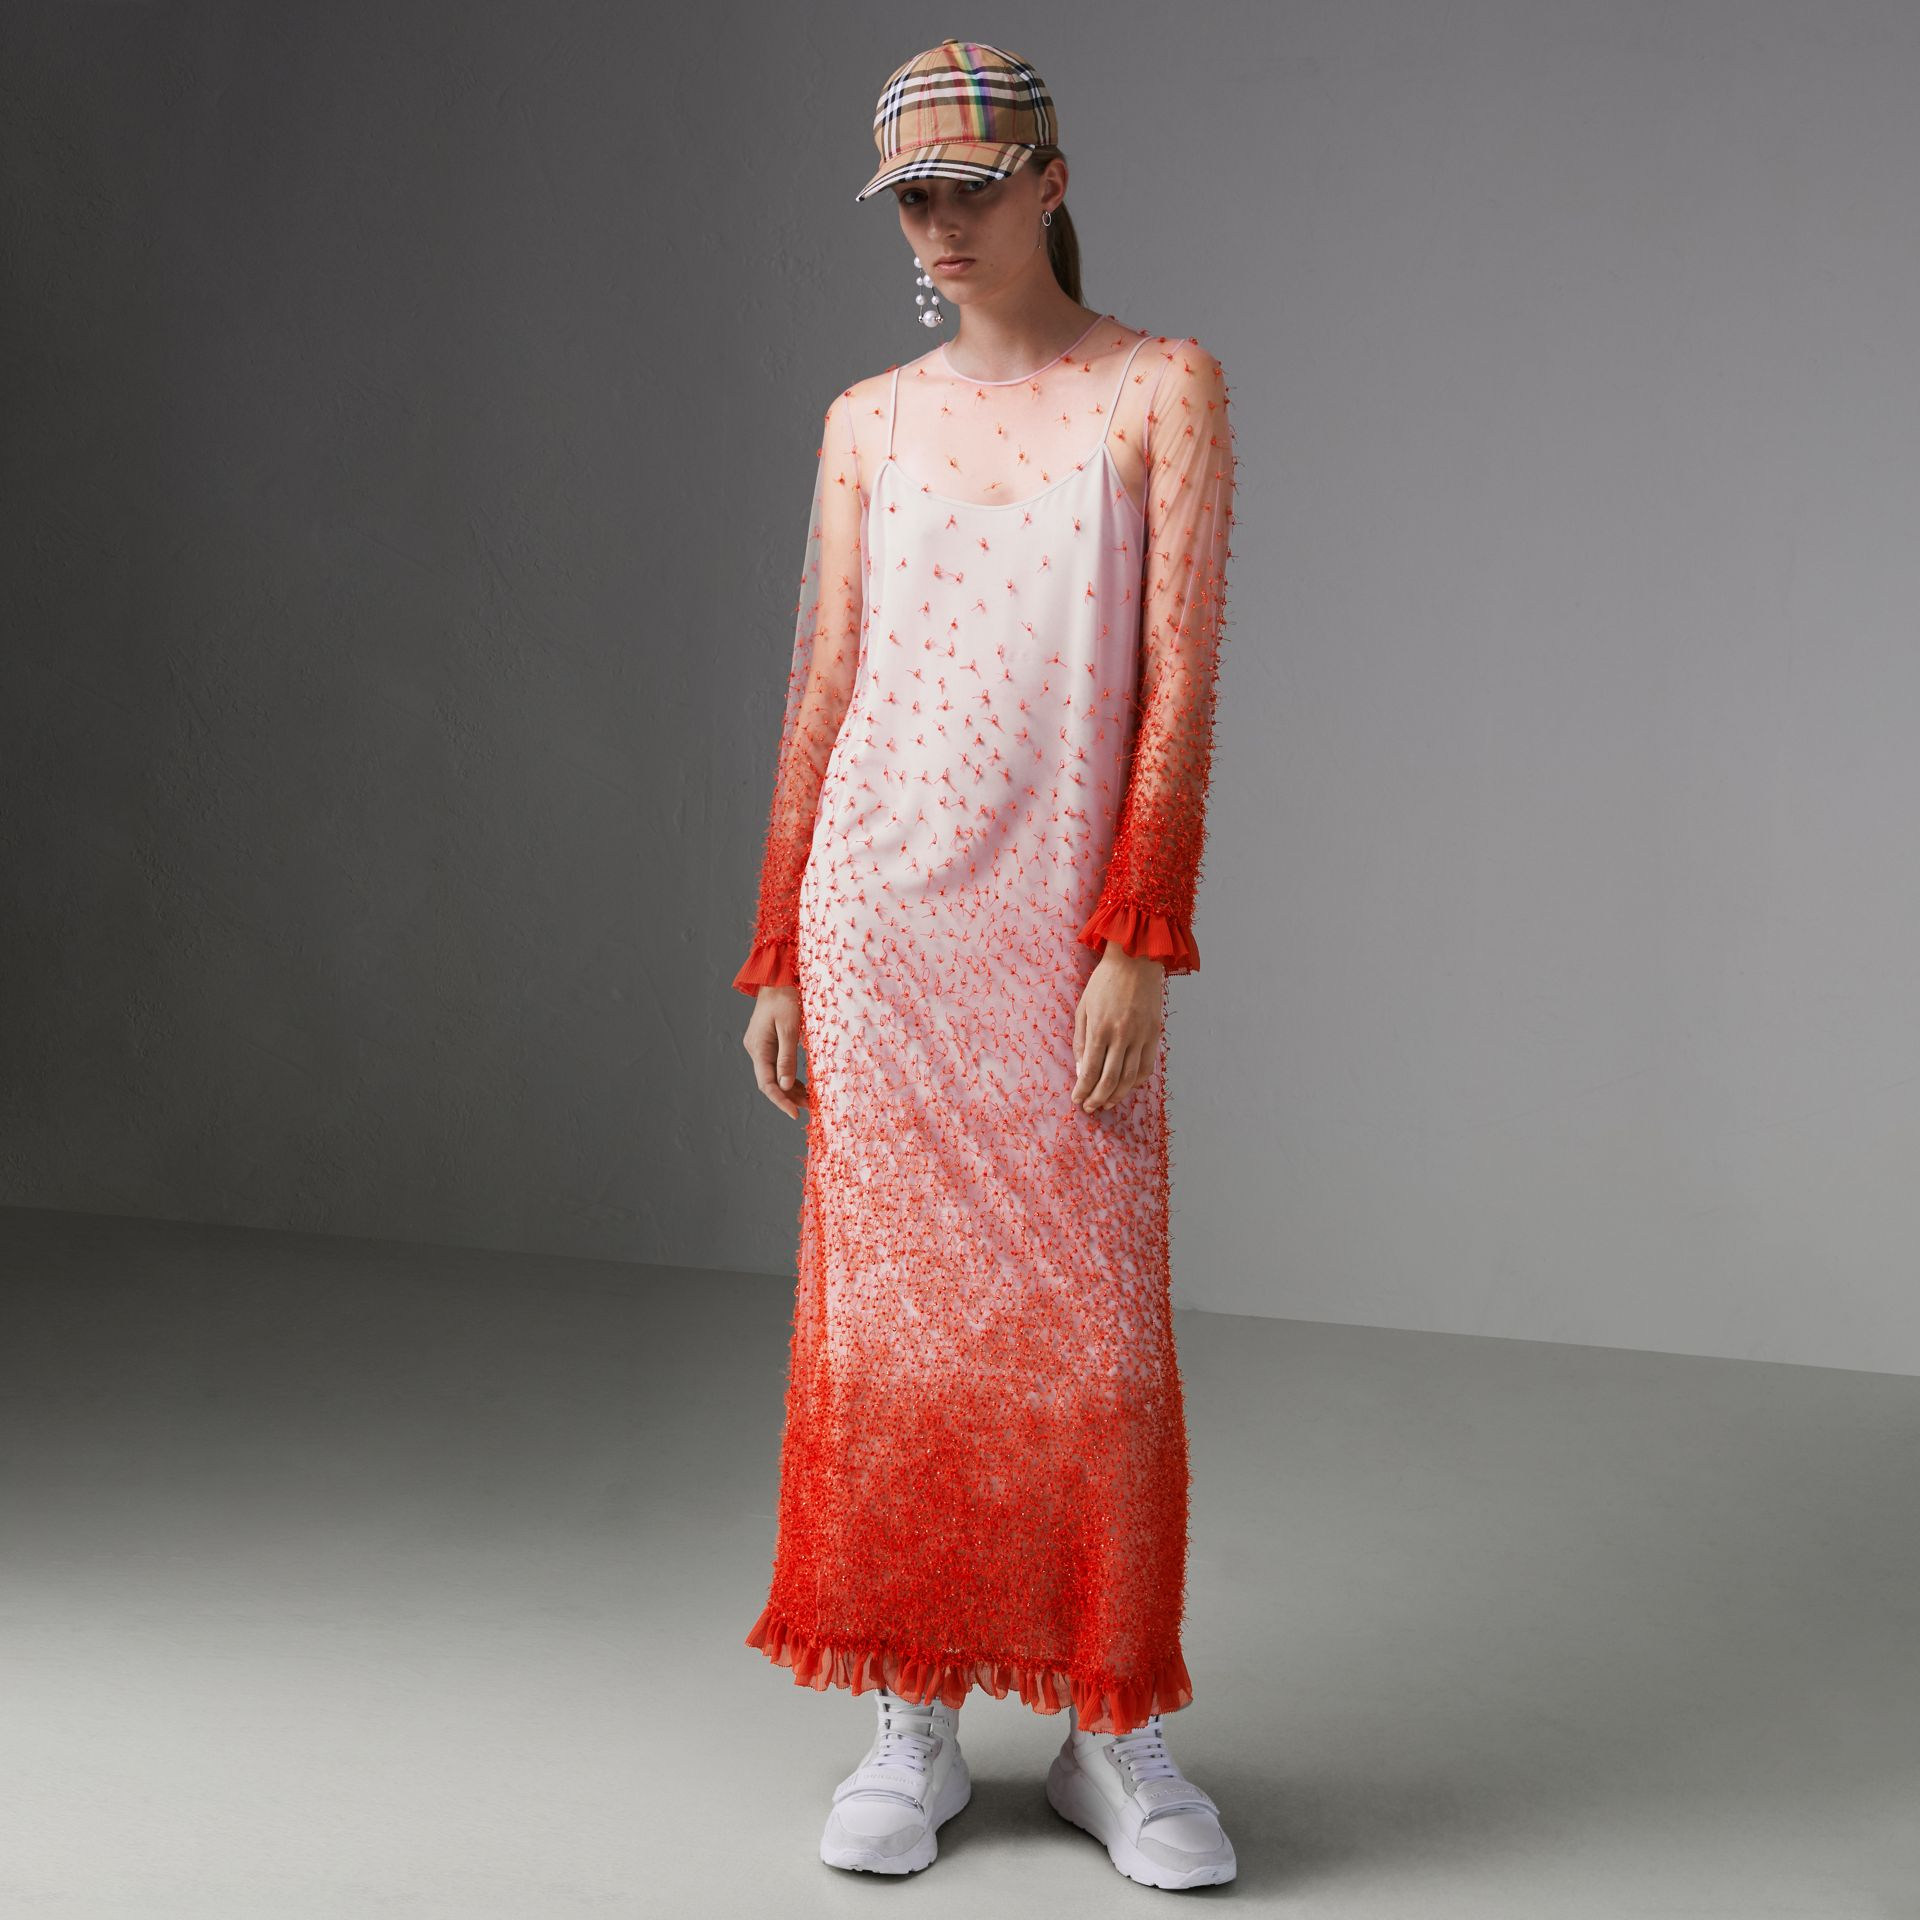 Dégradé Hand-beaded Crepon Dress in Coral - Women | Burberry - gallery image 5